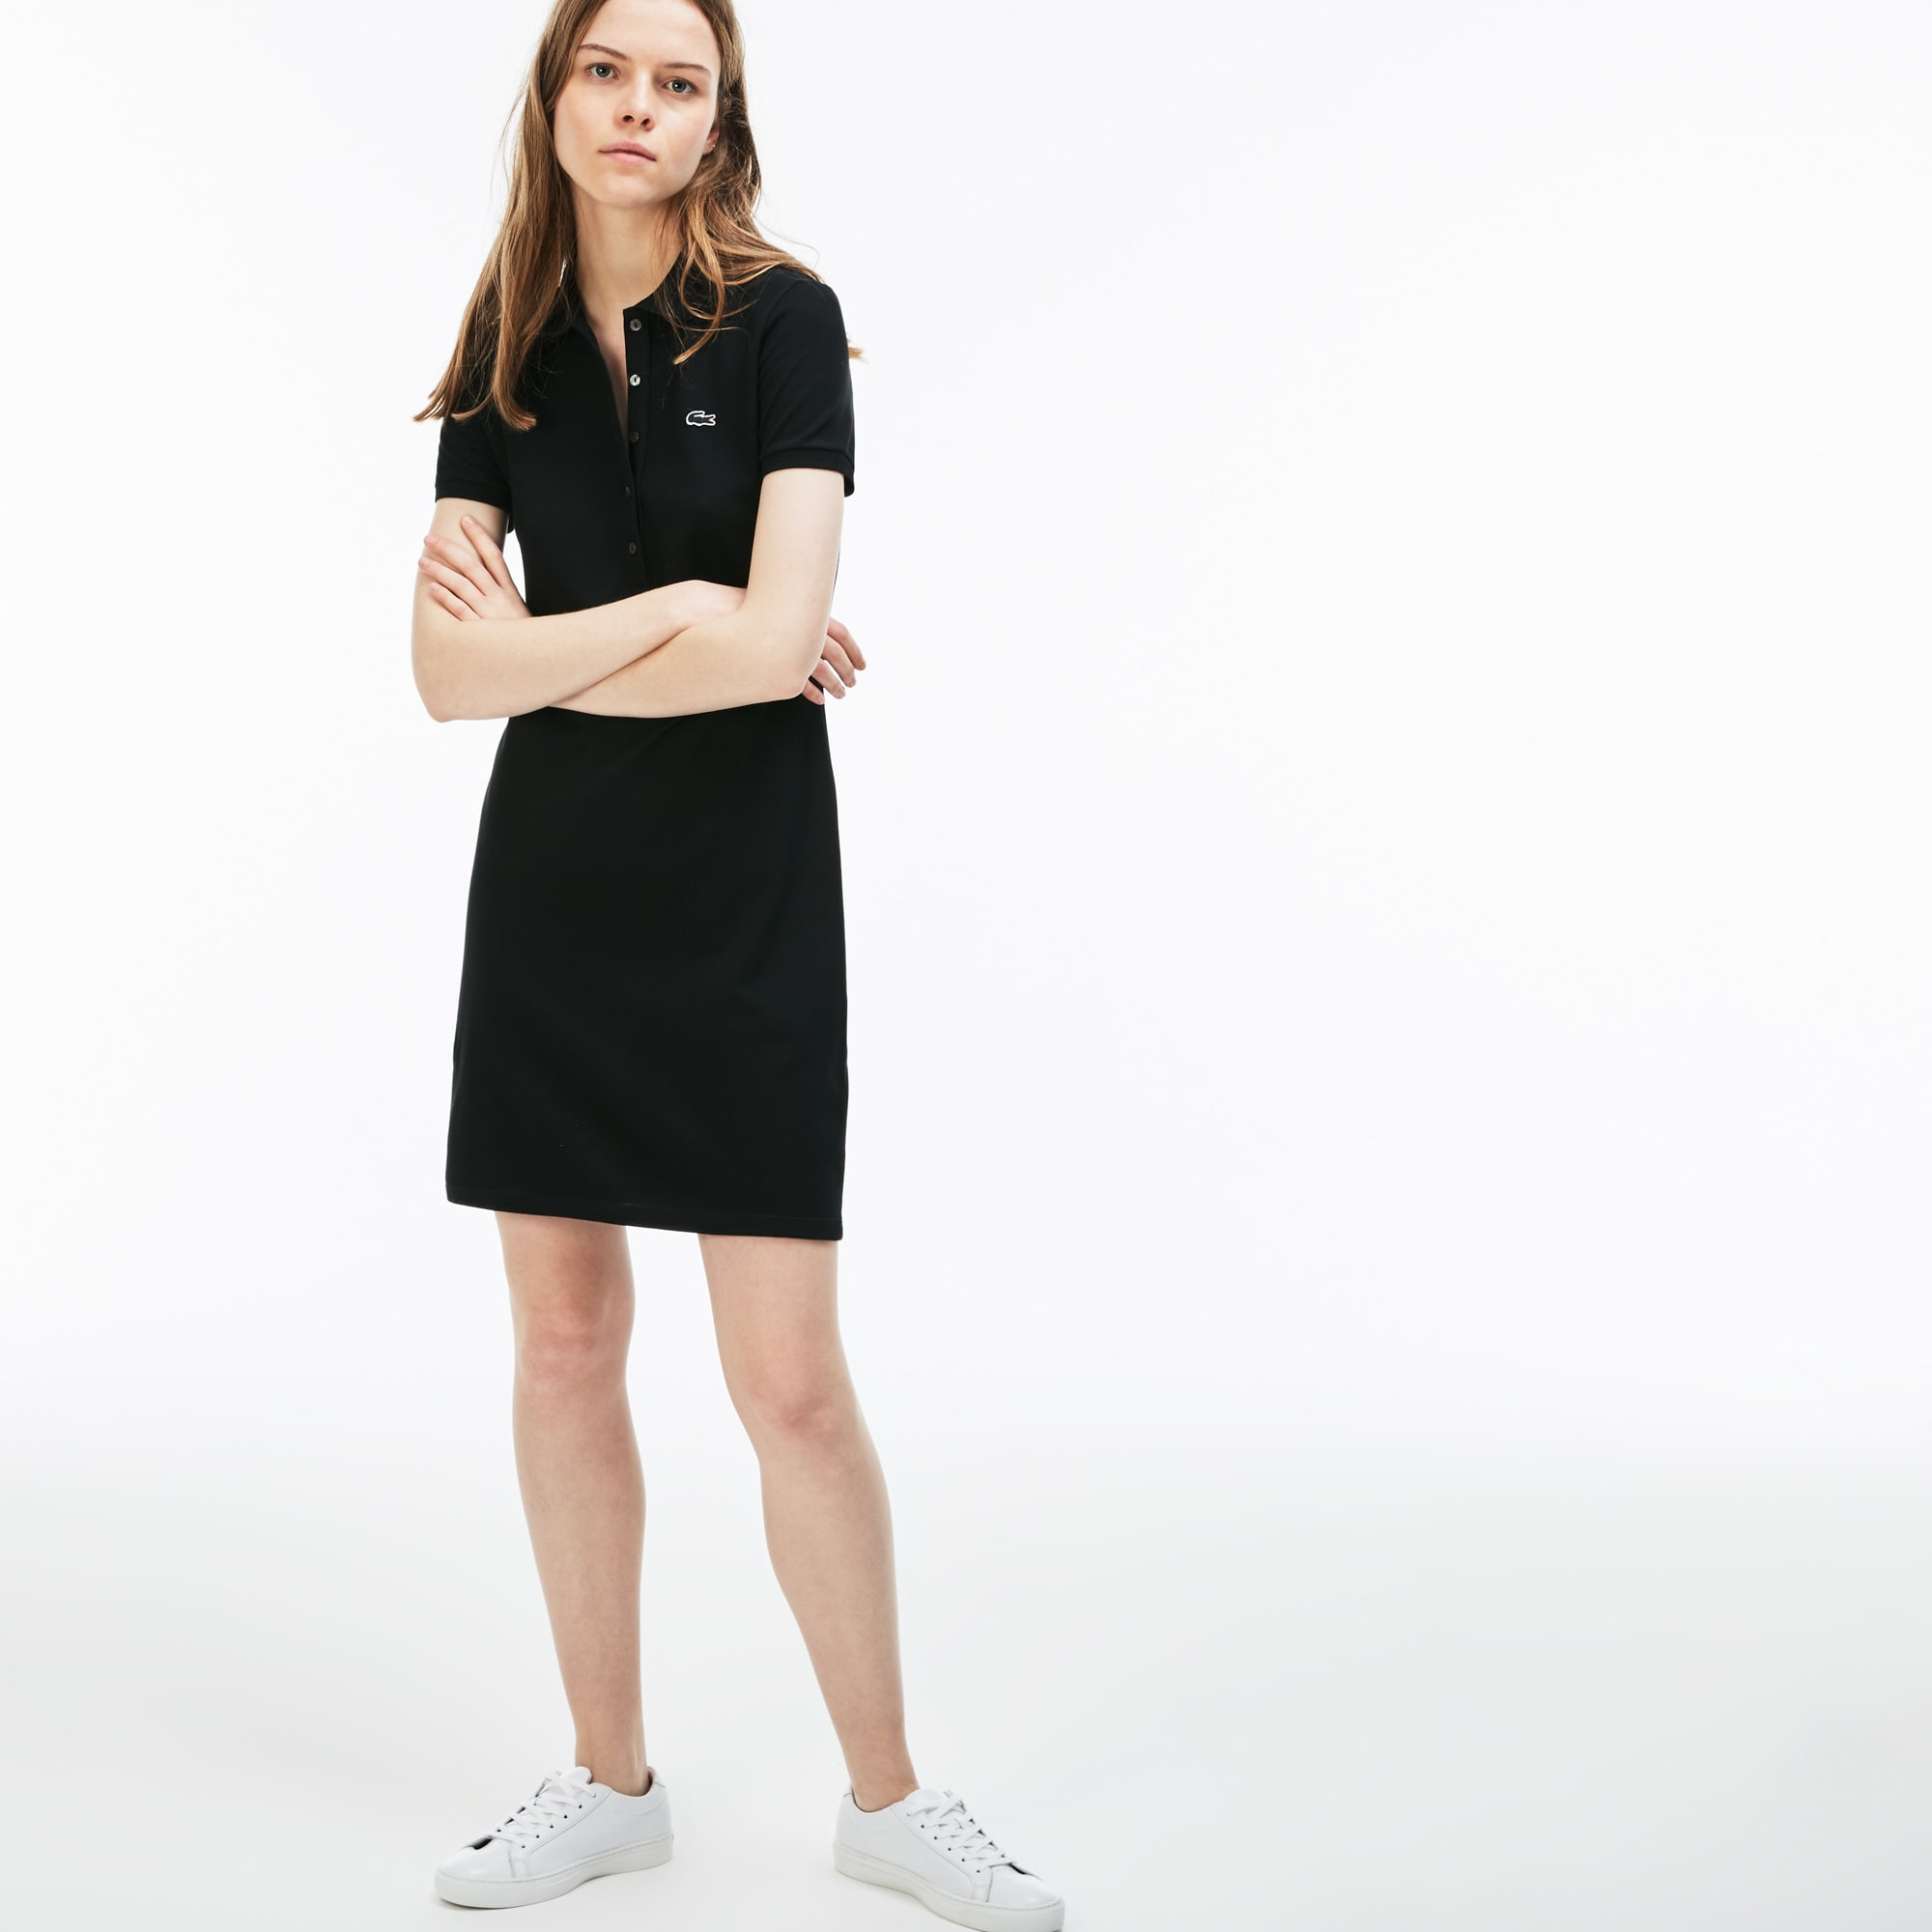 cad8024f55be Women's Clothing | Women's Fashion | LACOSTE